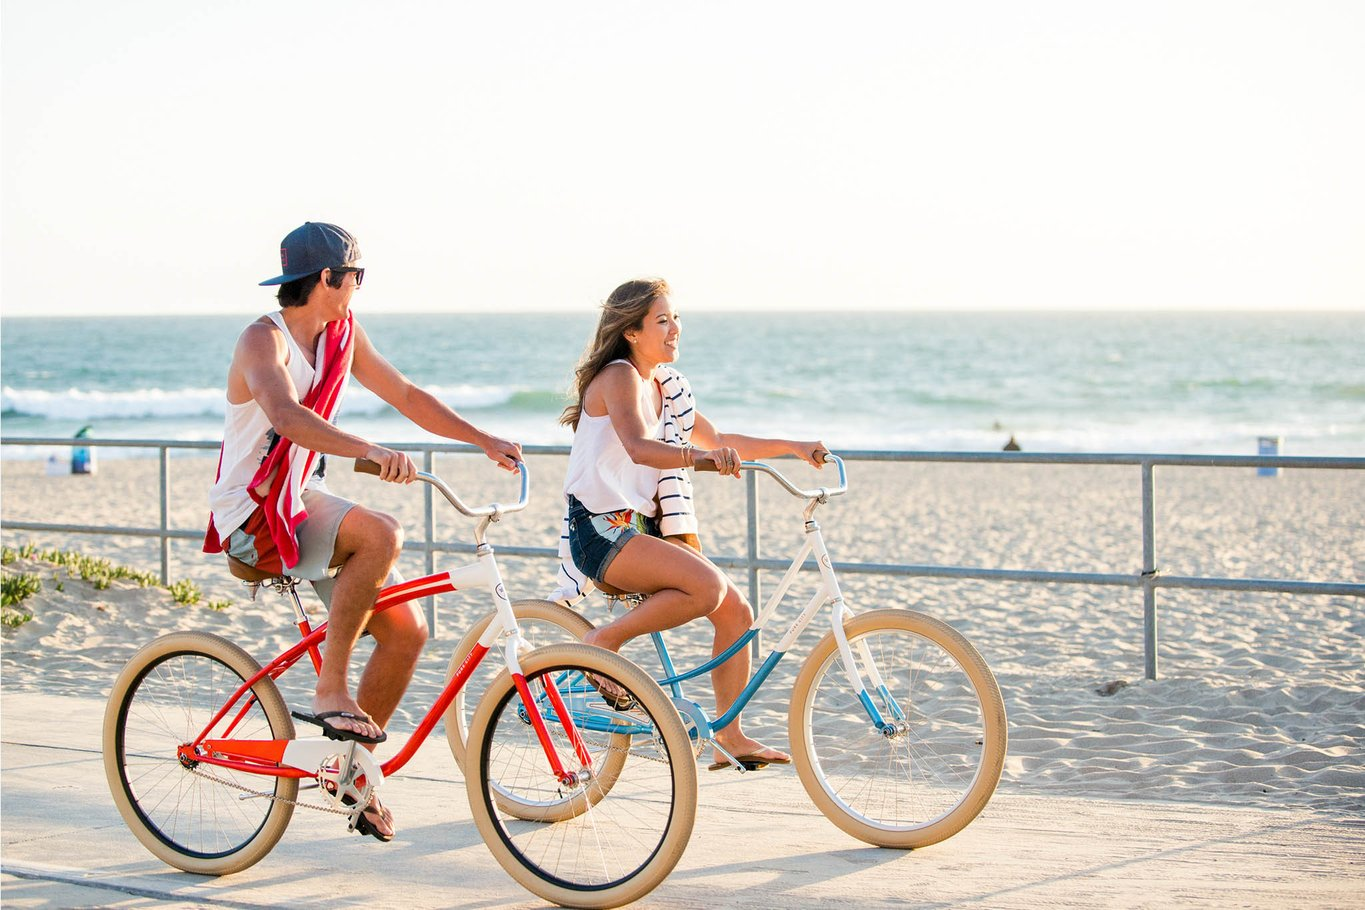 Cruisers and professional bicycles